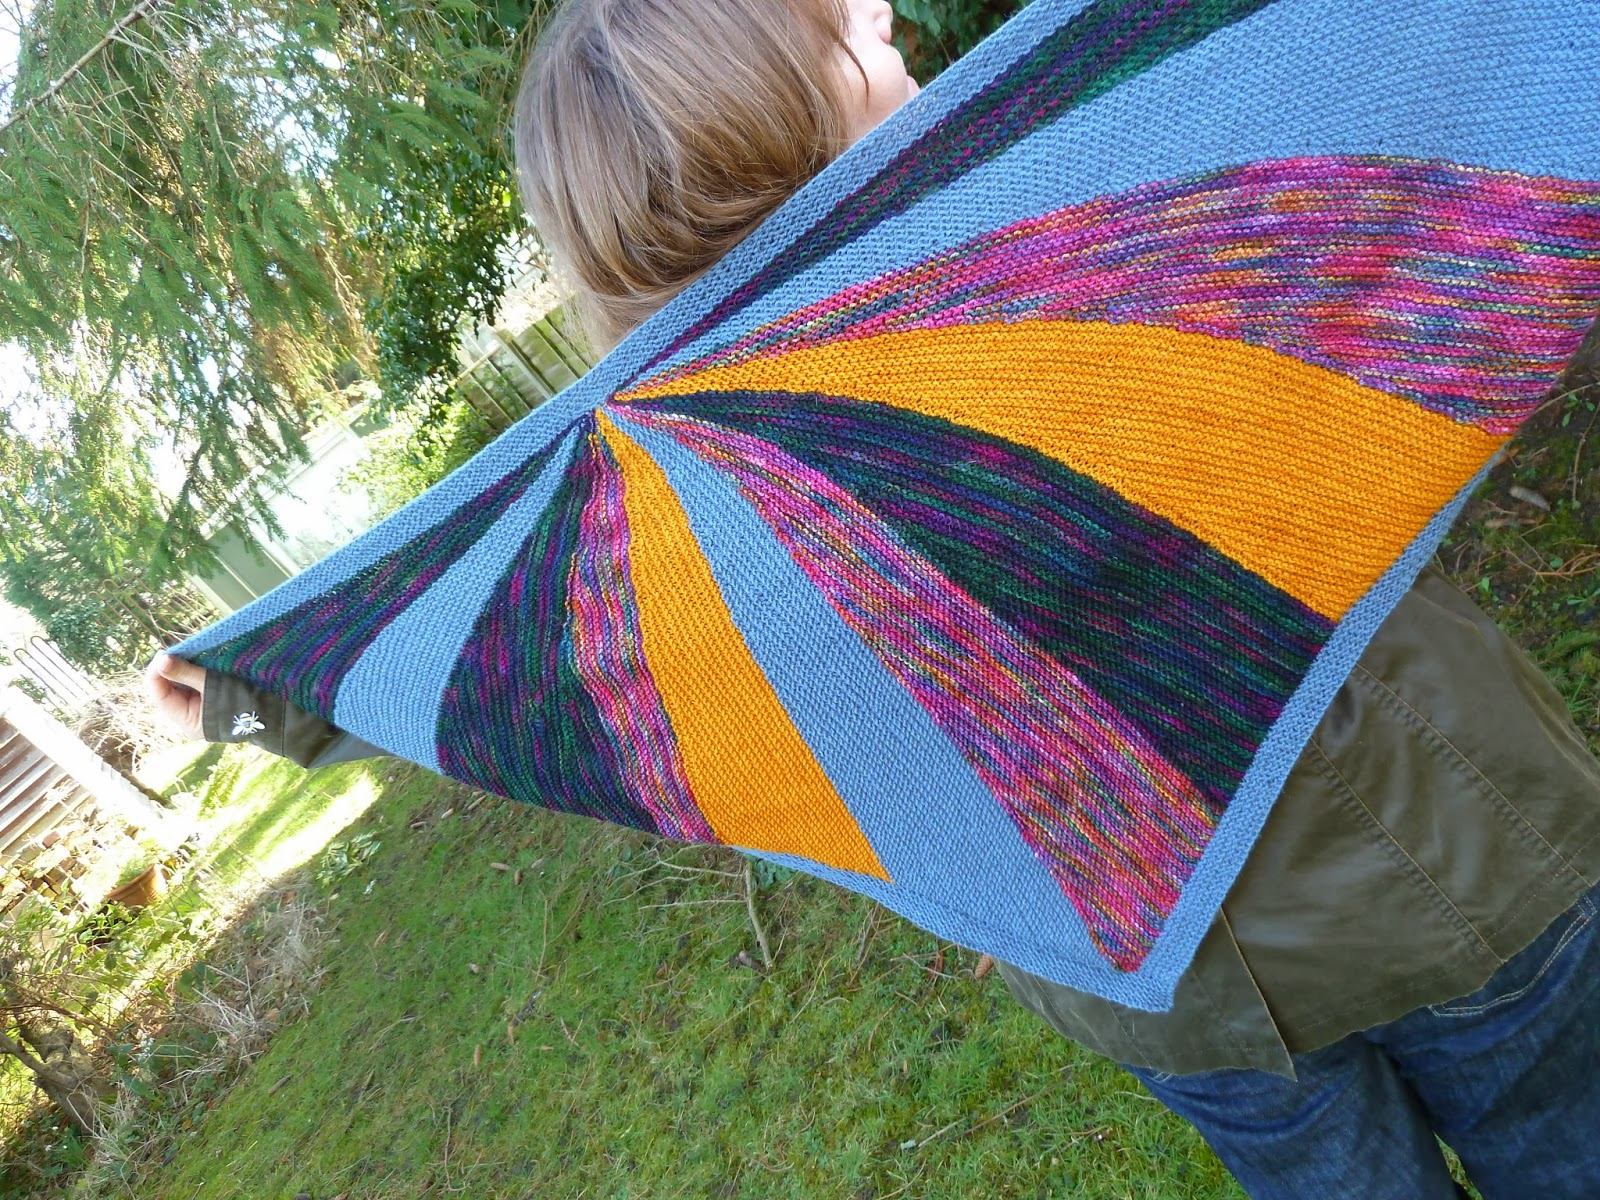 Finished Sunstruck shawl - handknit from pattern by Laura Aylor